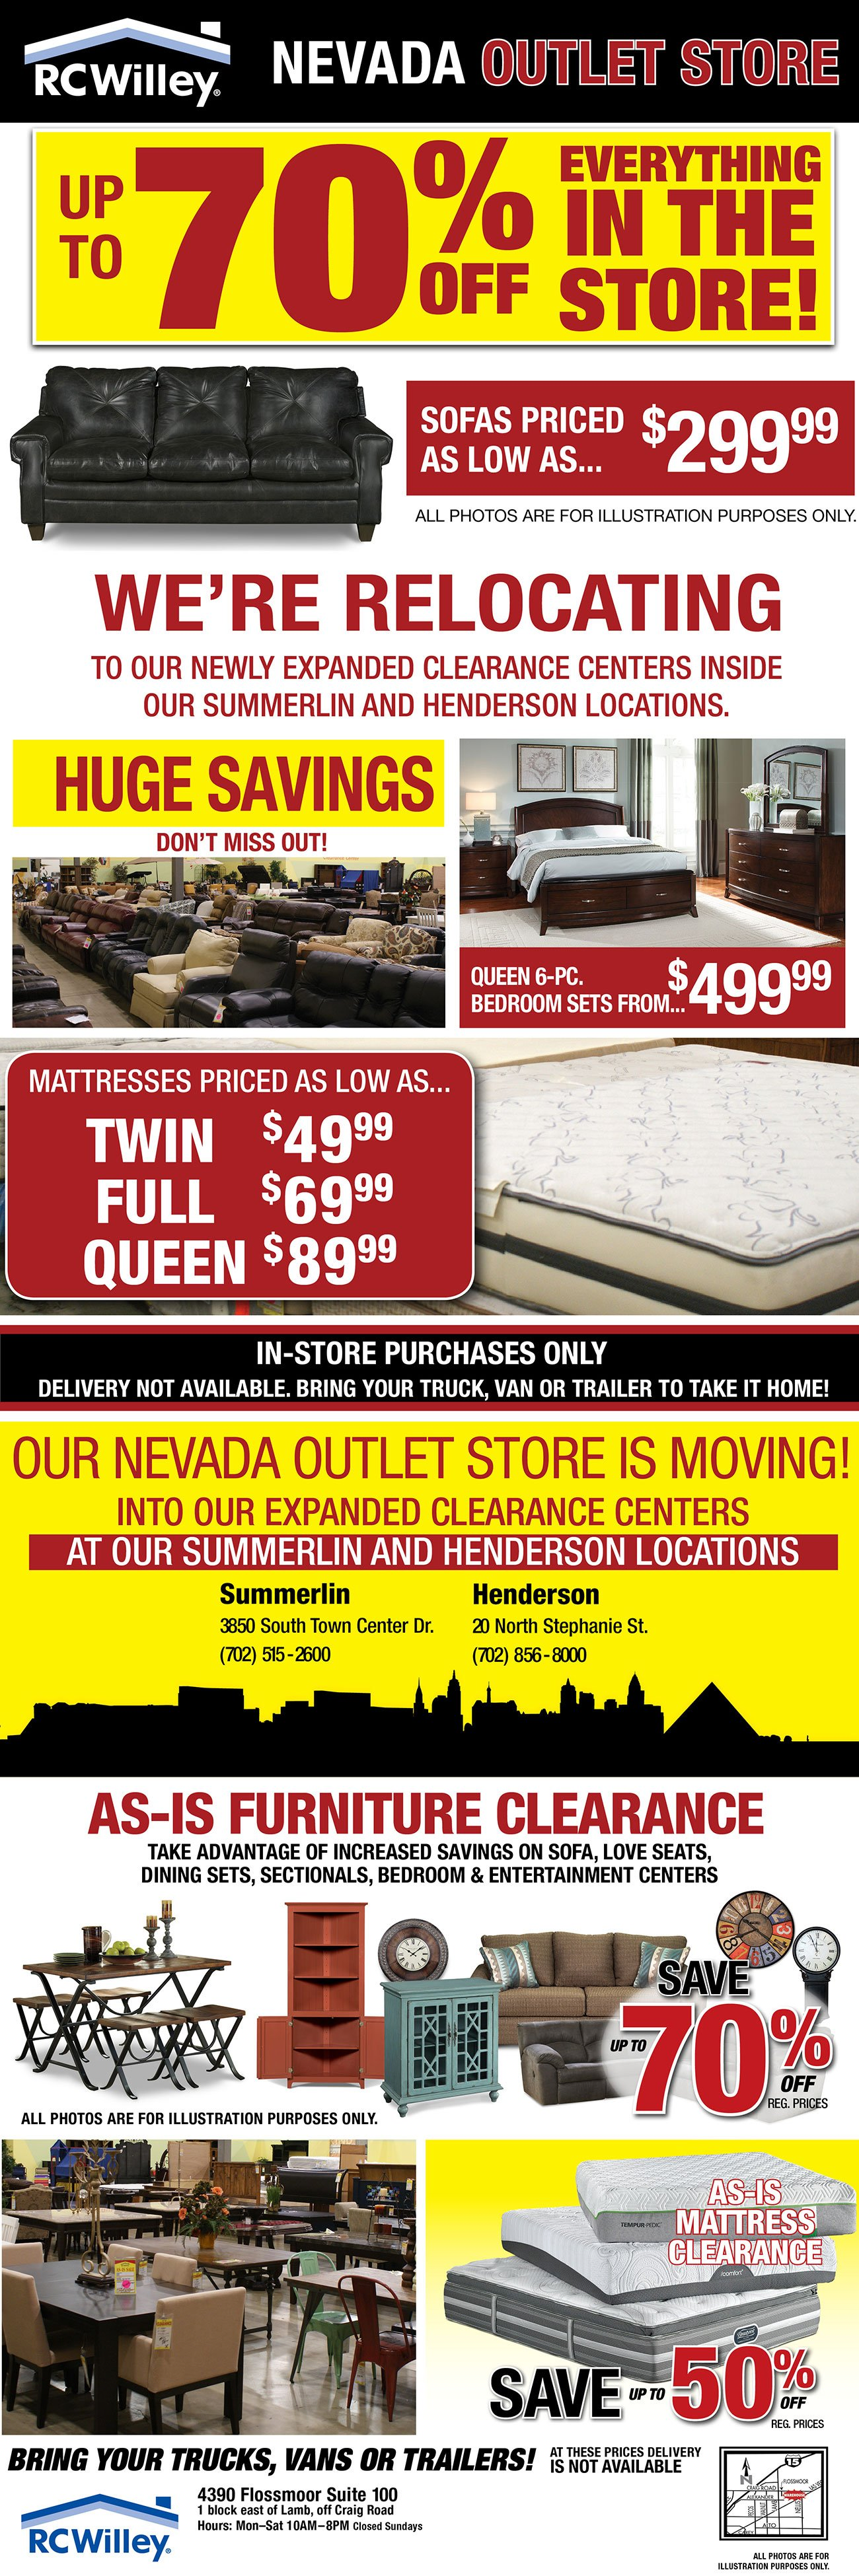 Nevada Outlet Store · Furniture · Electronics